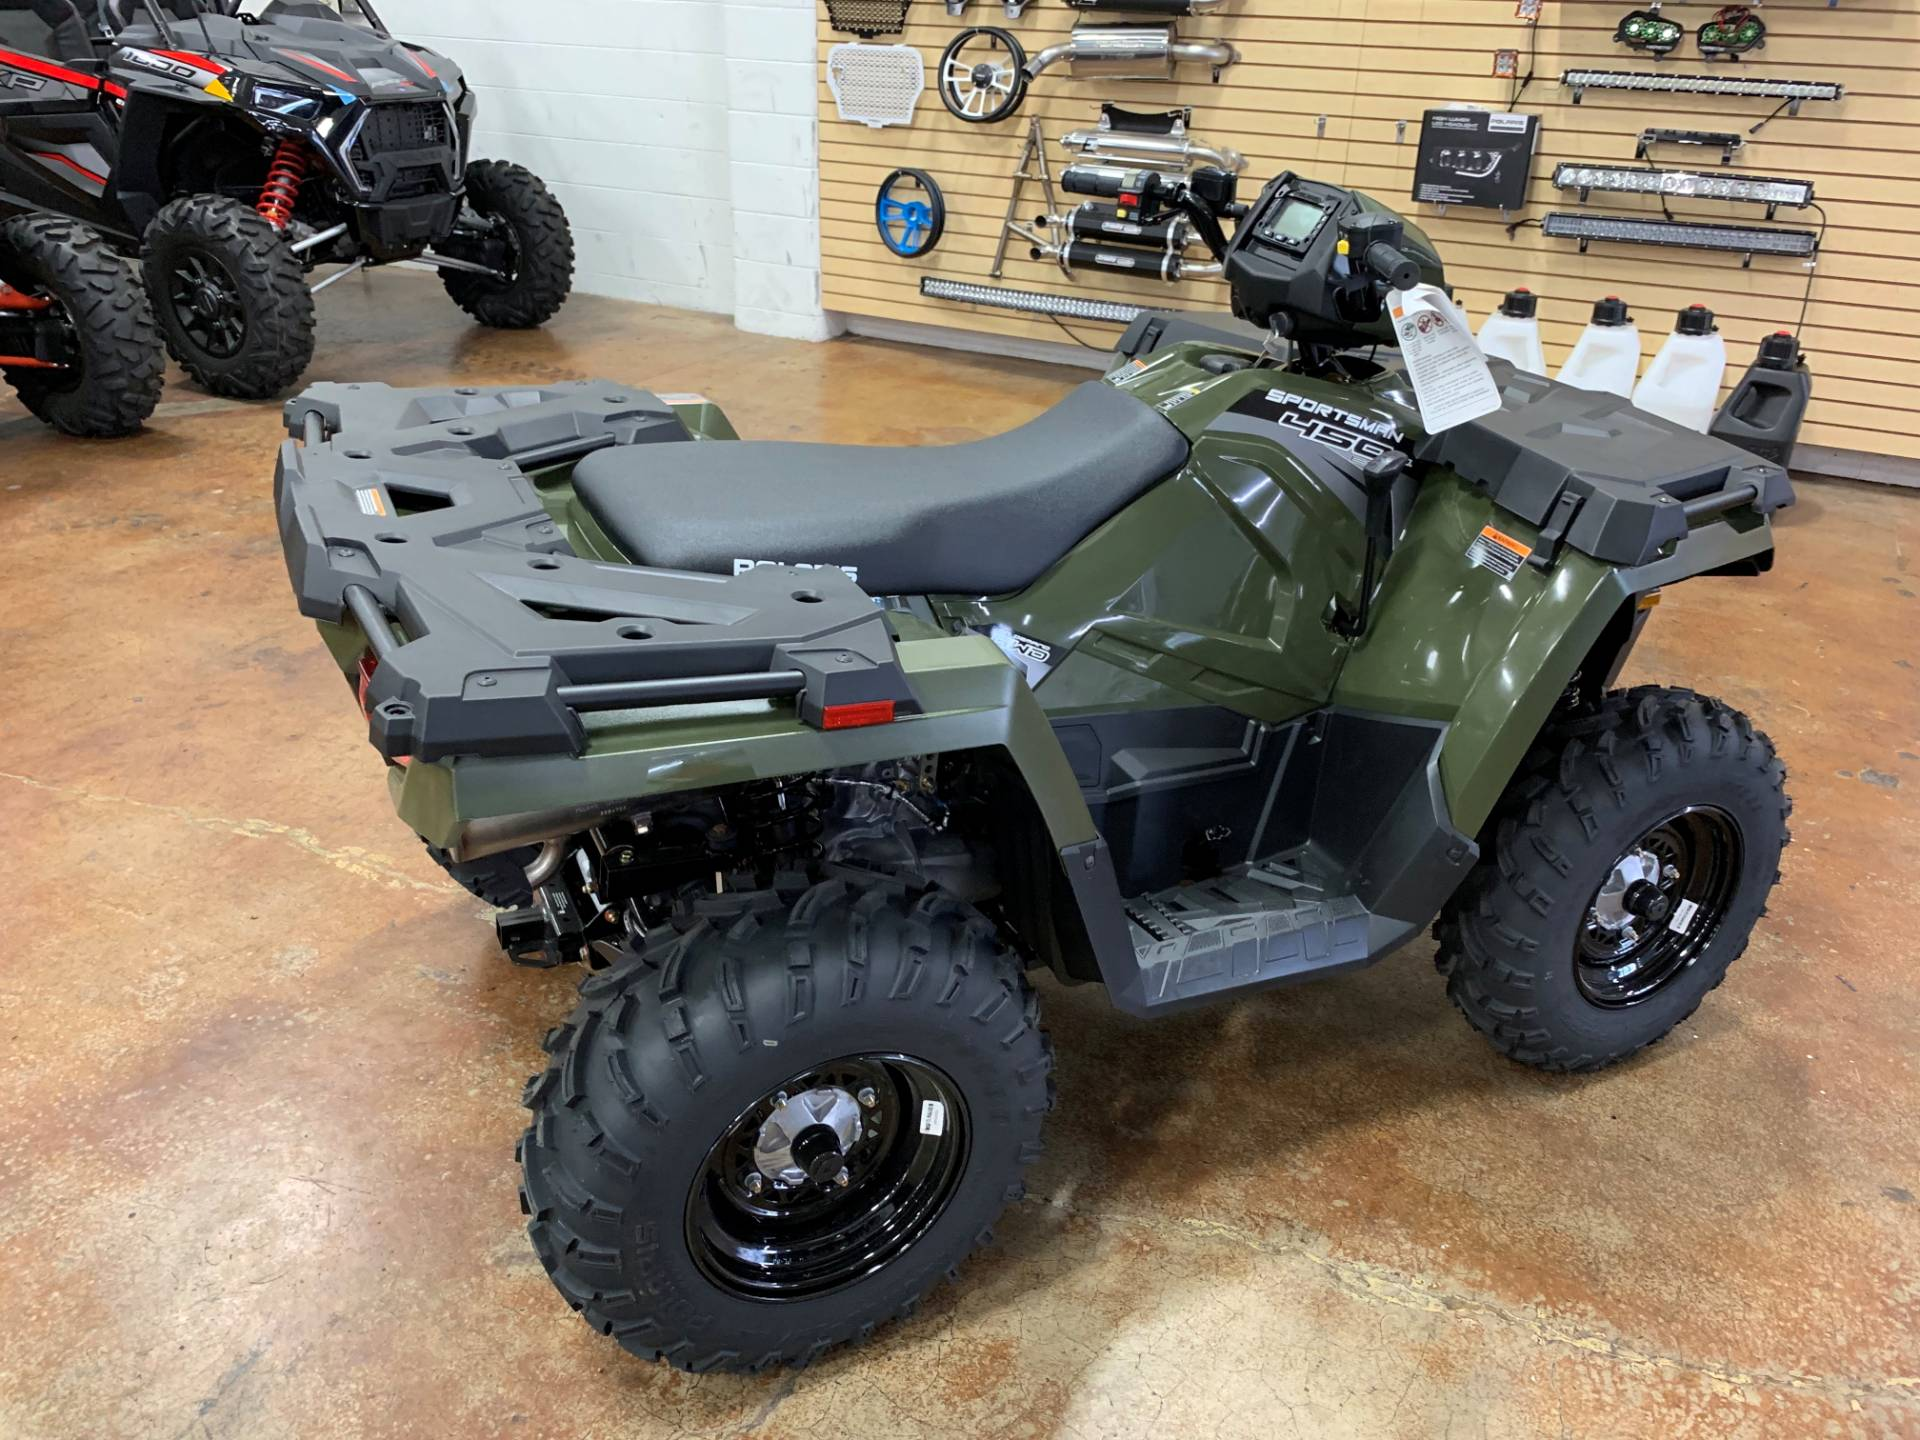 2019 Polaris Sportsman 450 H.O. in Tualatin, Oregon - Photo 5